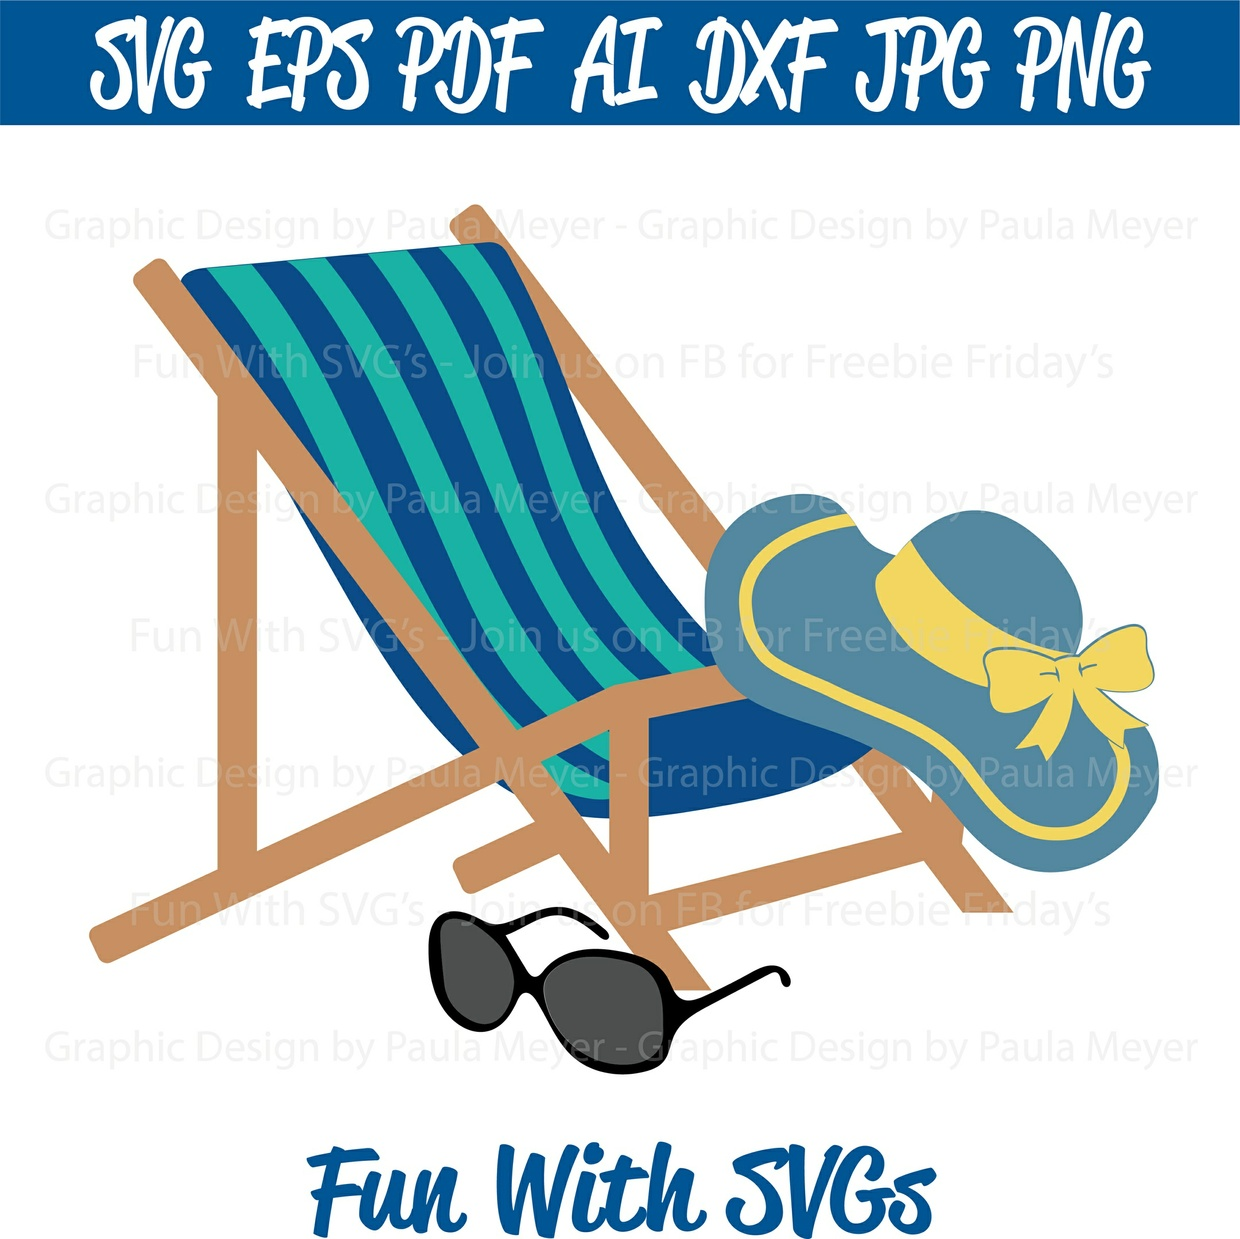 Beach Chair - SVG Cut File, High Resolution Printable Graphics and Editable Vector Art